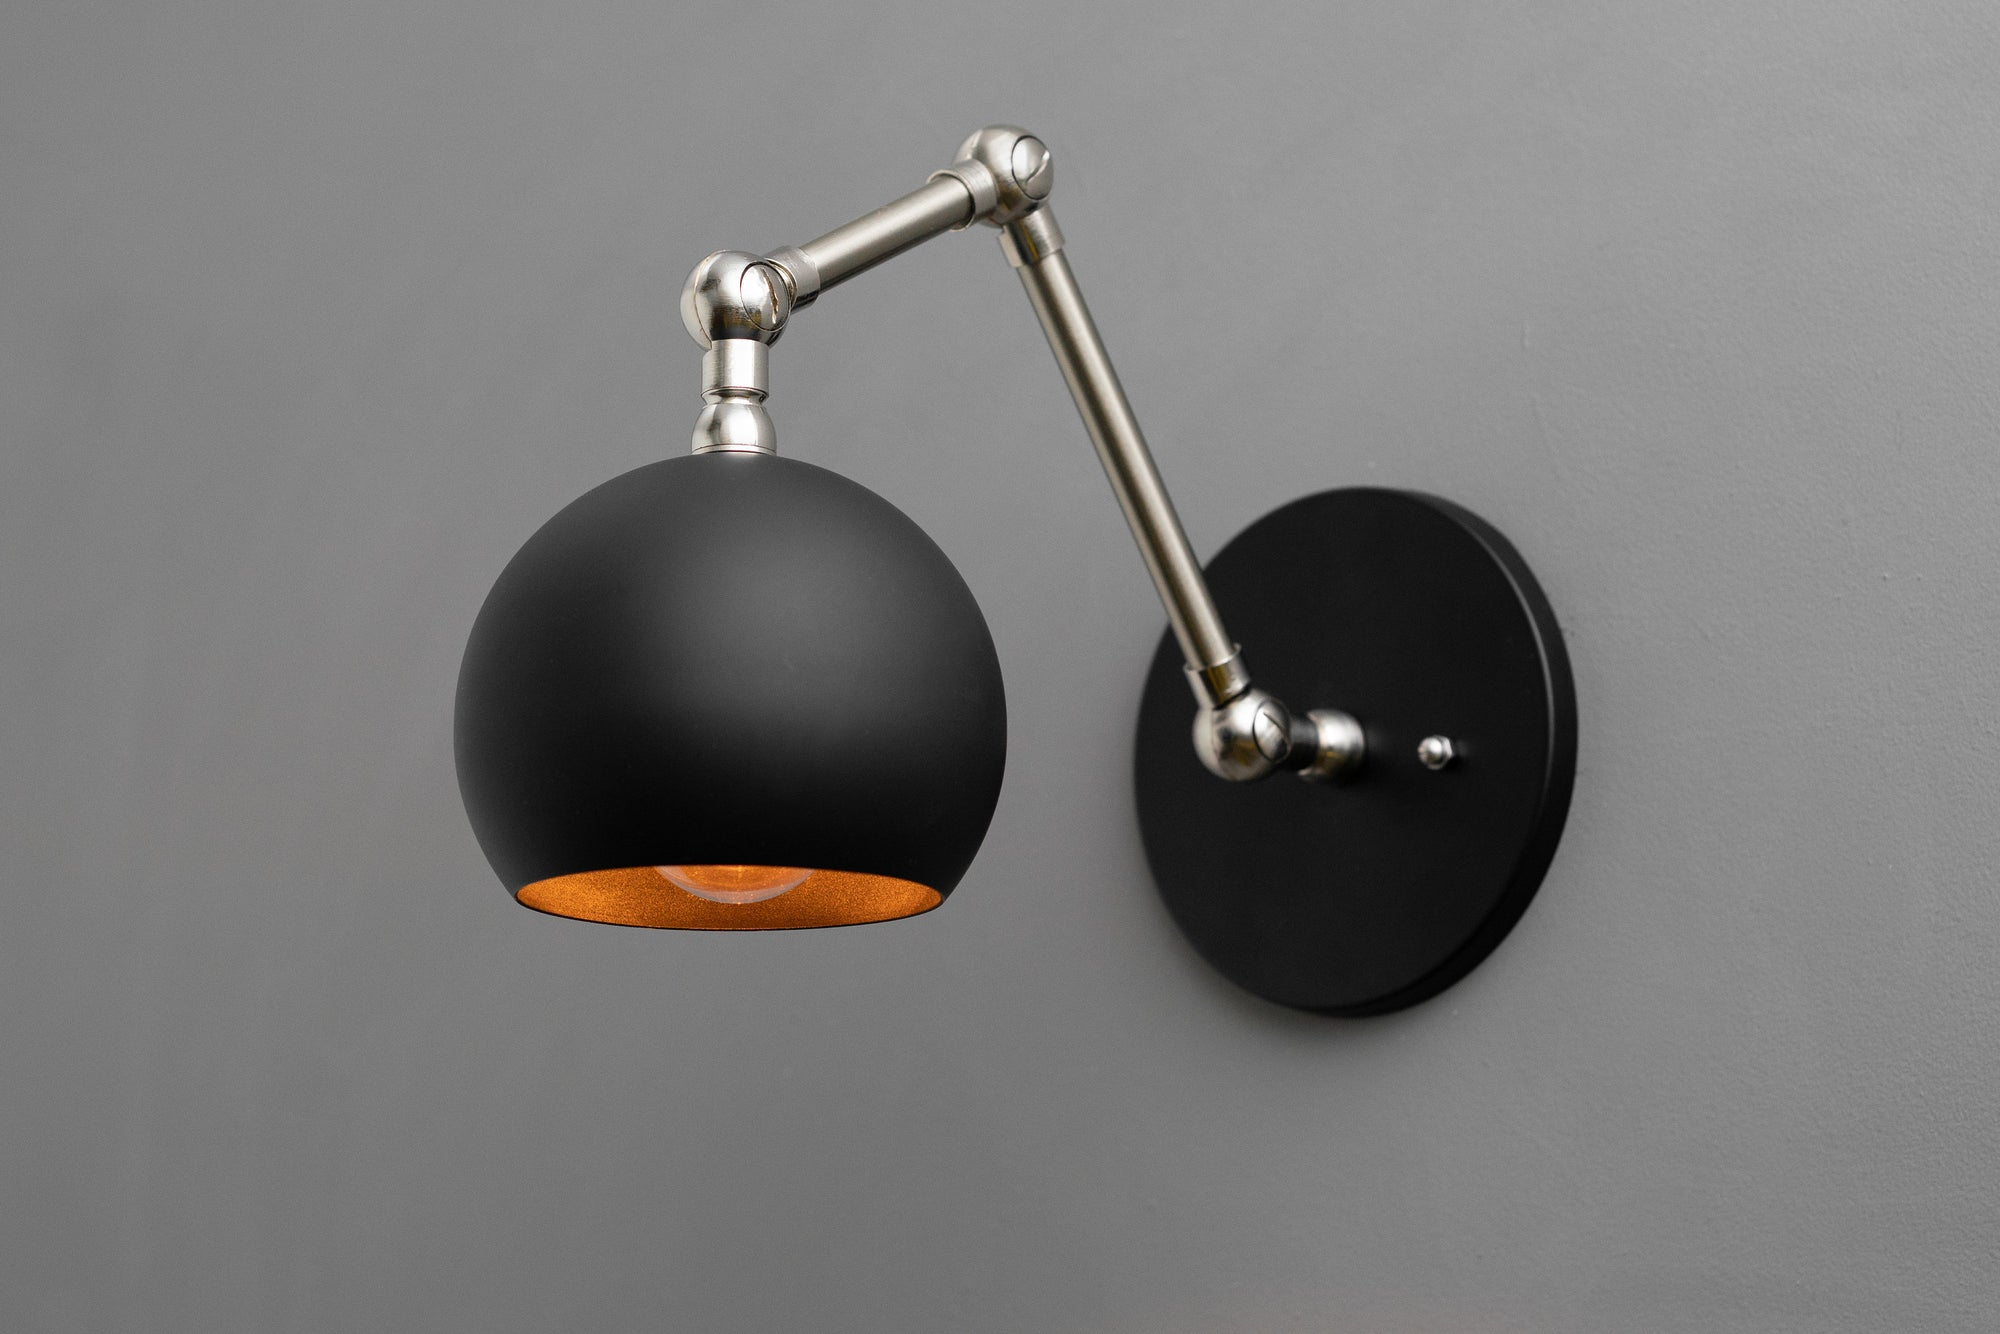 My Name Is Shade.Articulating Sconce Orb Shade Light Swivel Wall Light Light